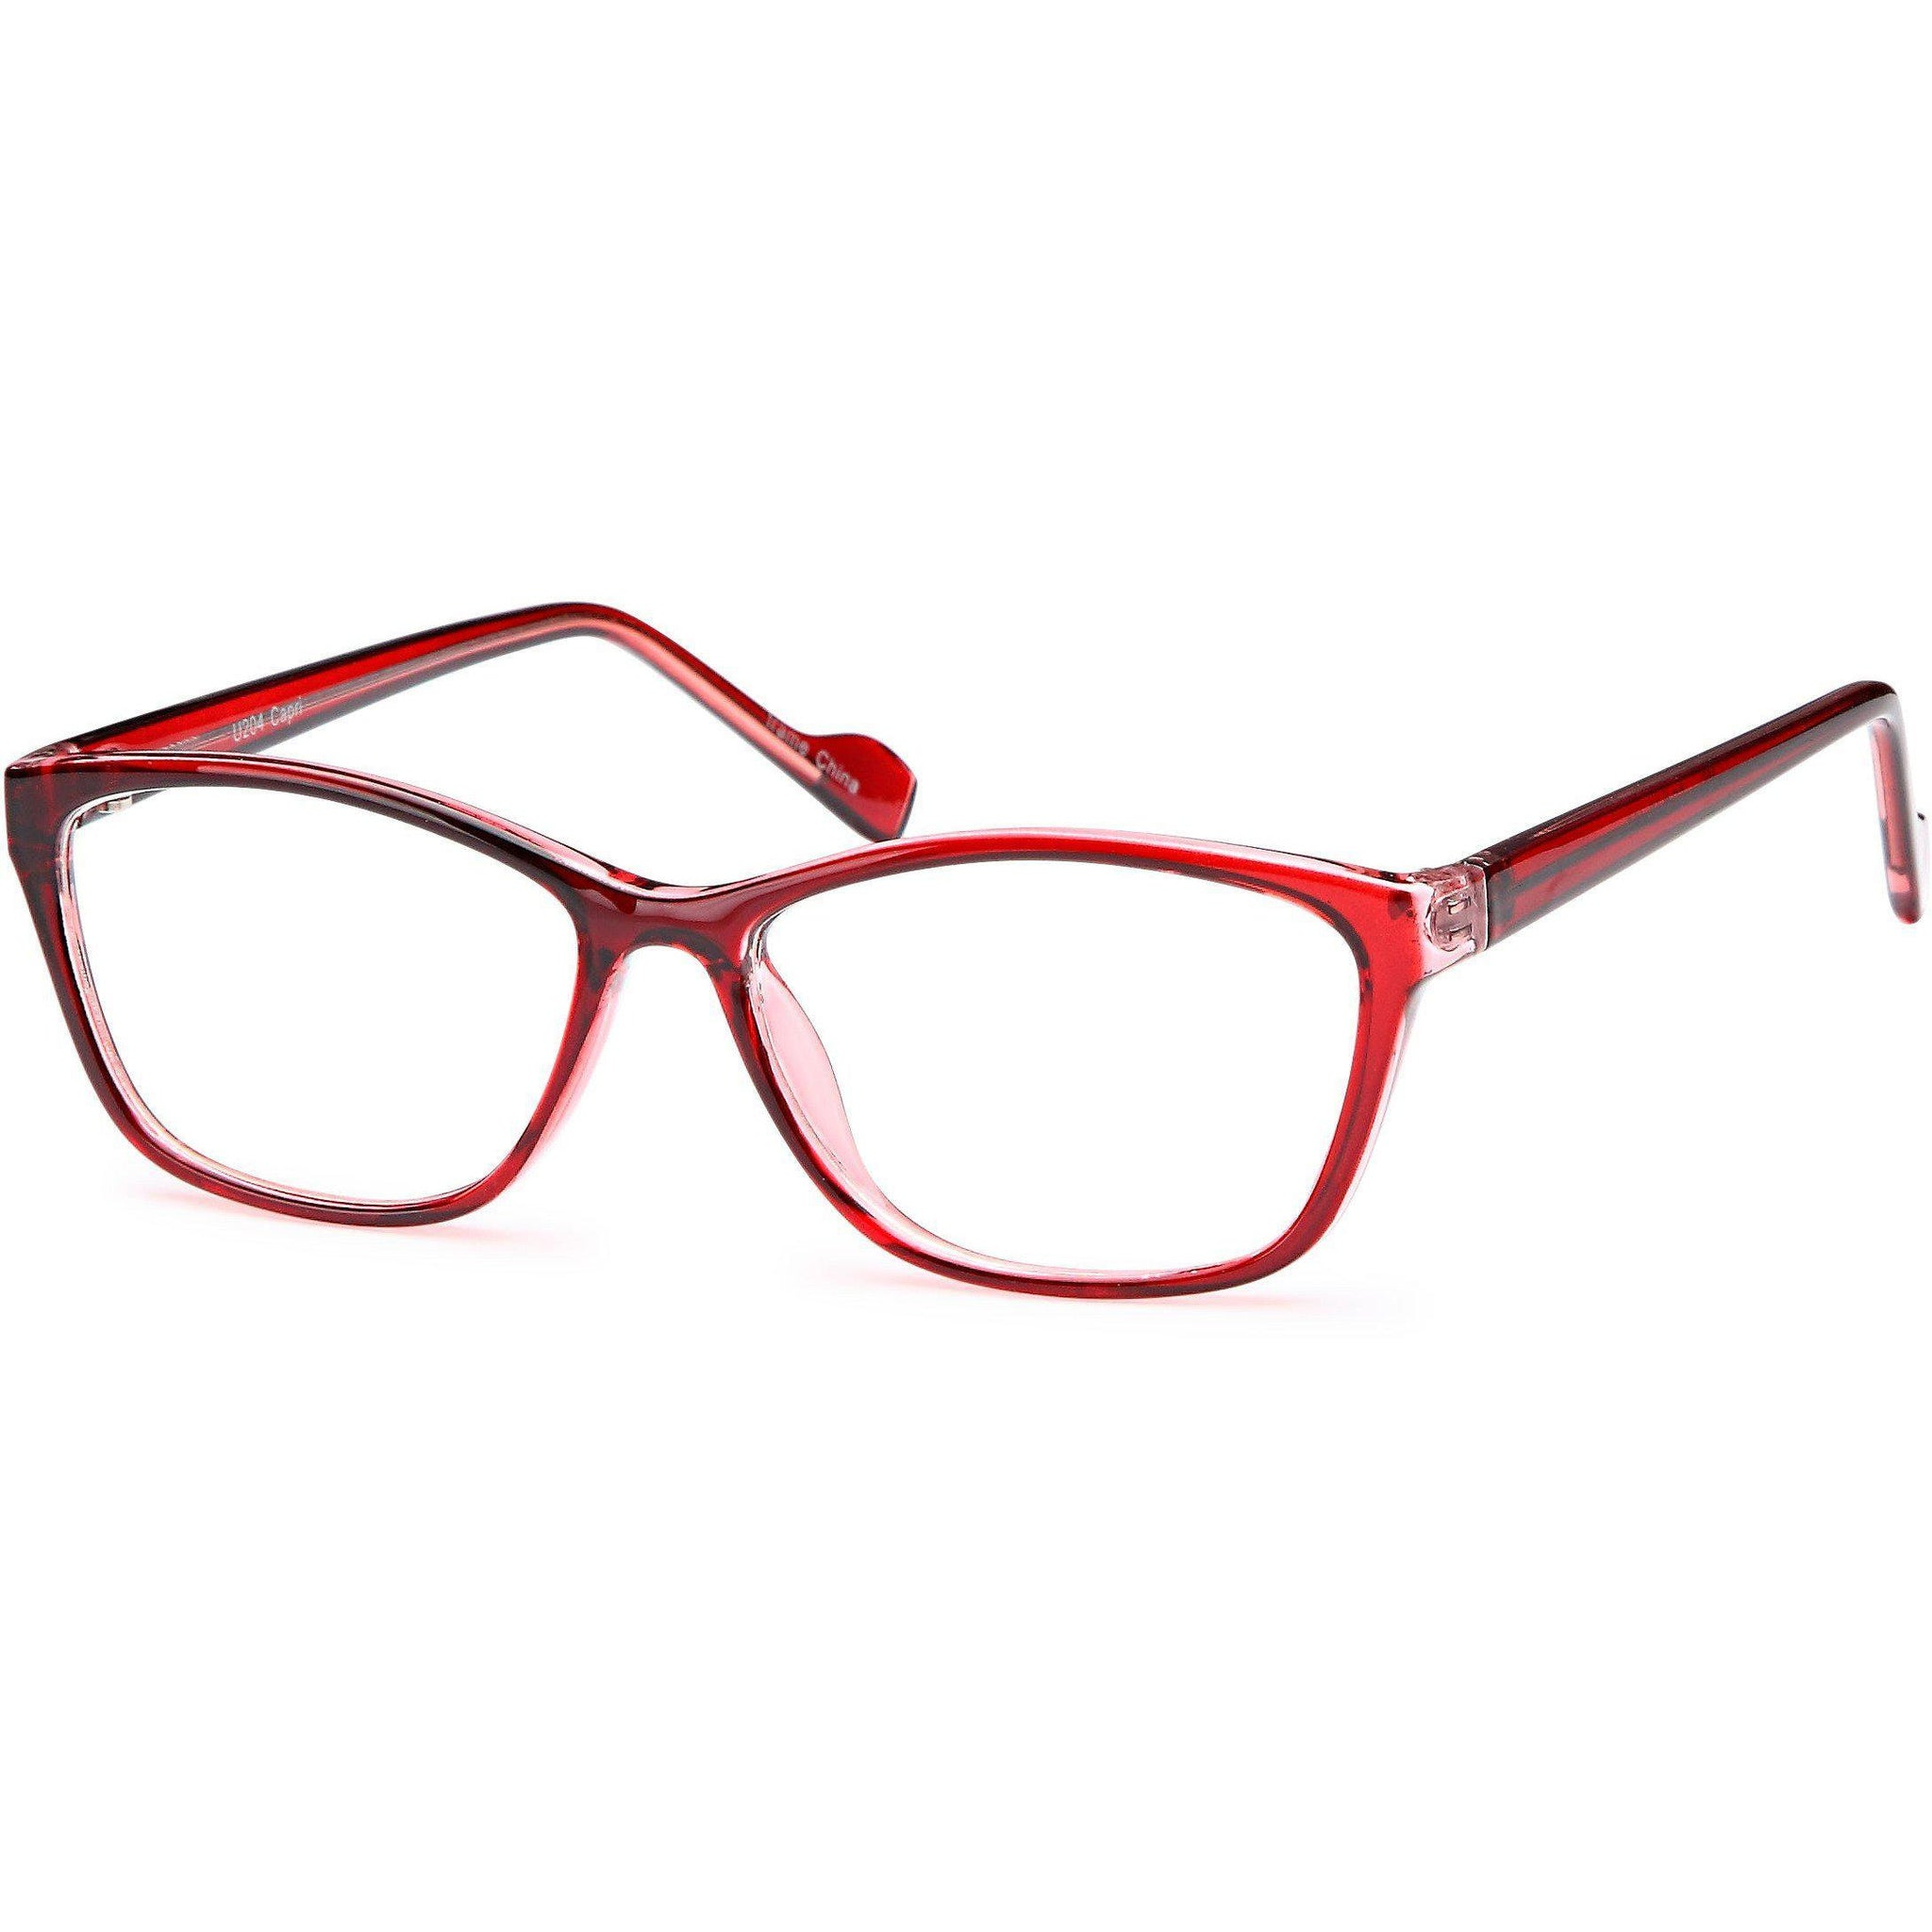 Earl's Court by The Square Mile Prescription Eyeglasses Frame - timetoshade